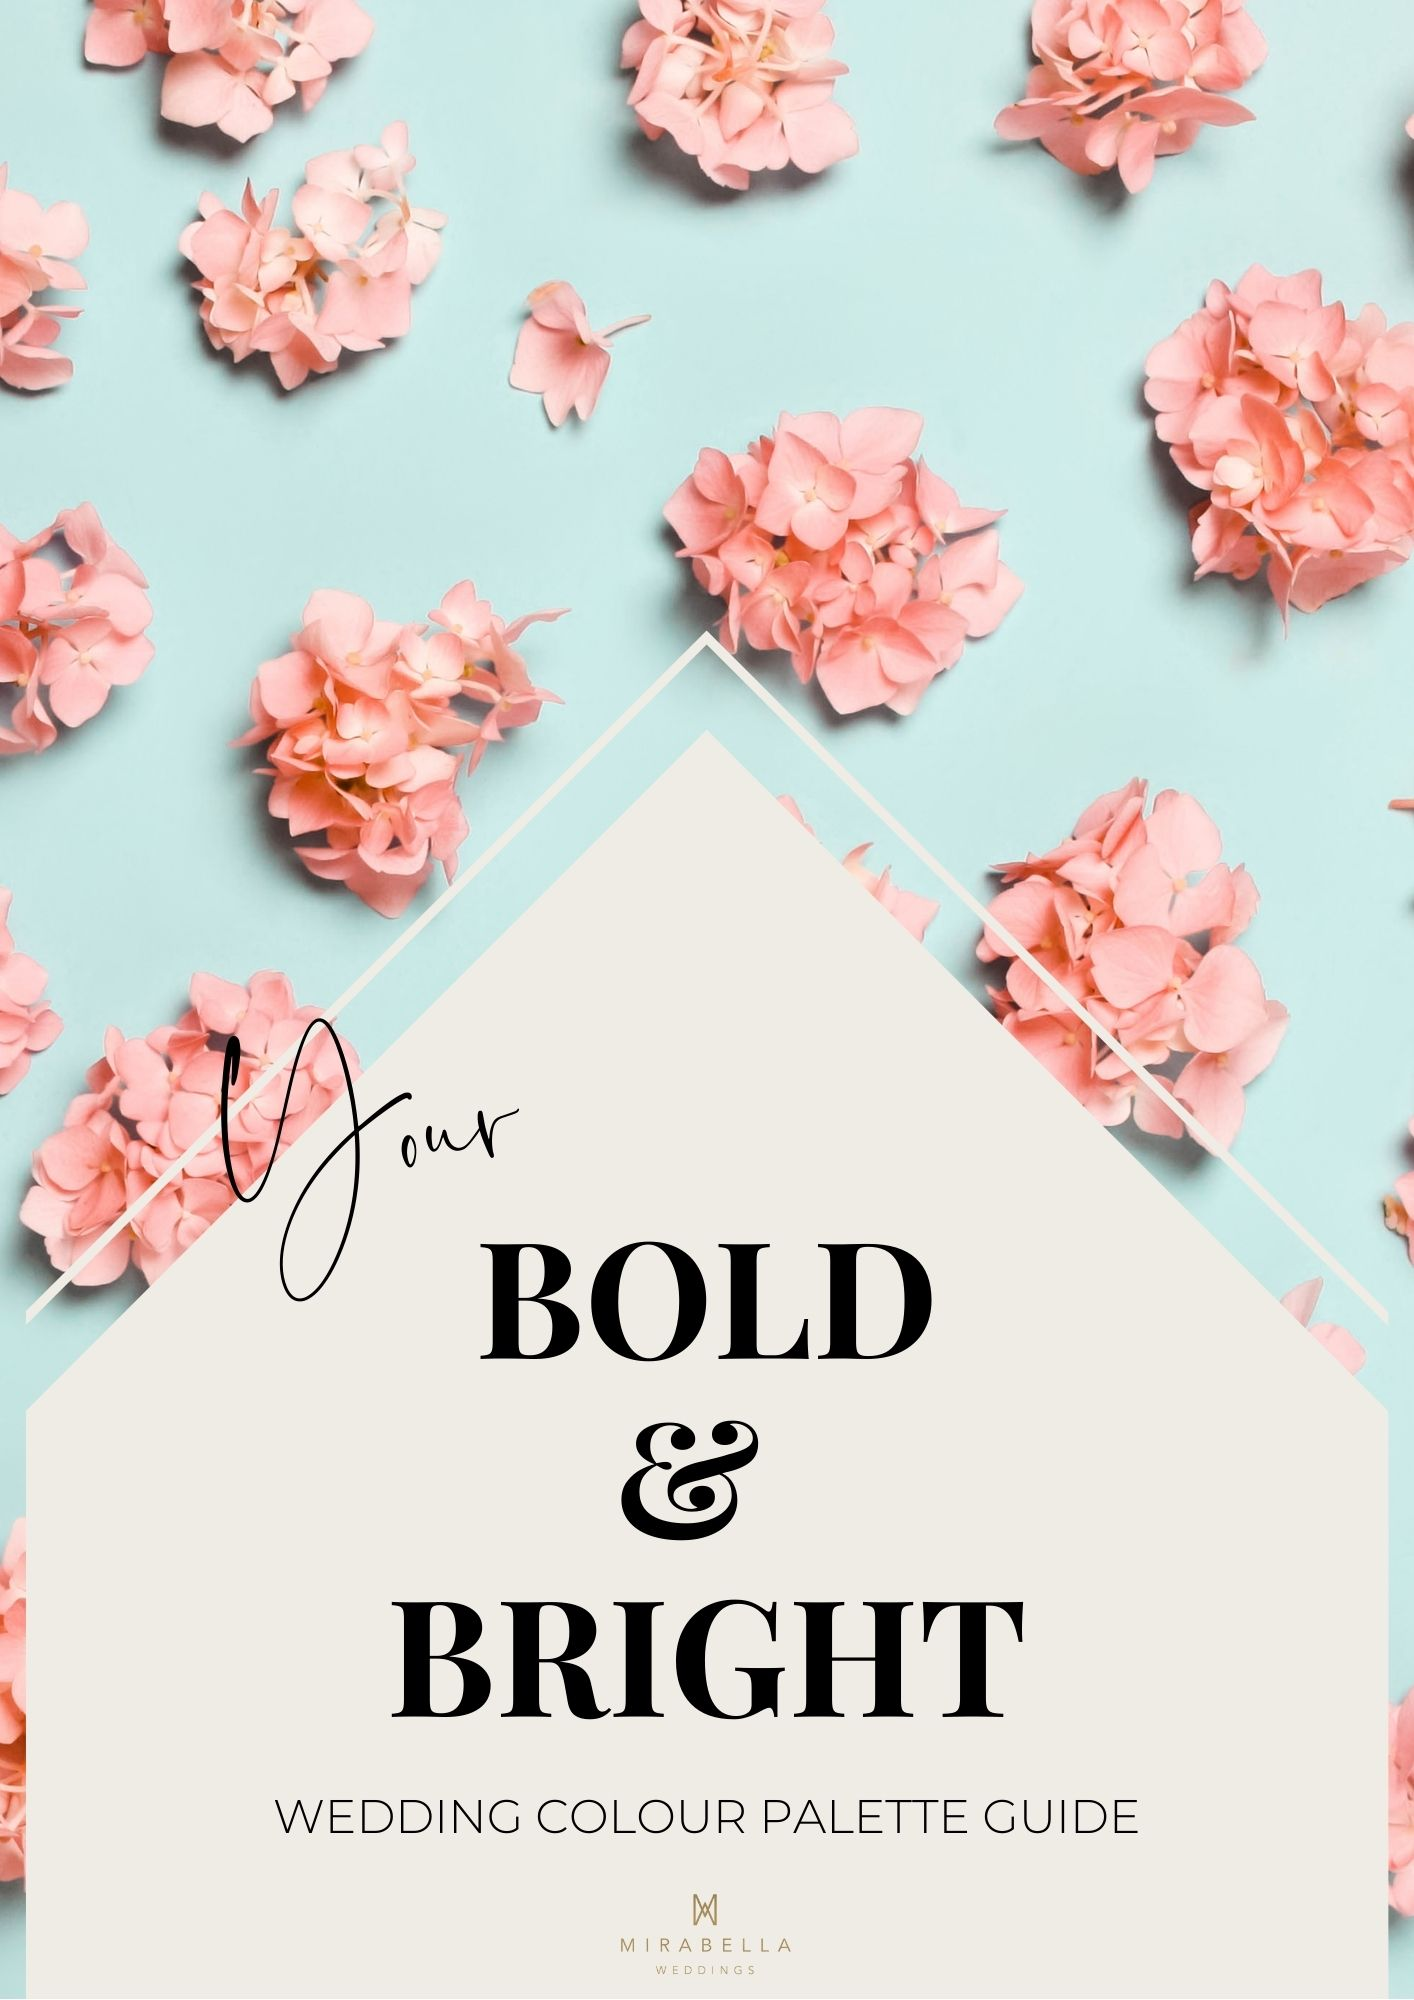 Wedding Colour Palettes - BOLD